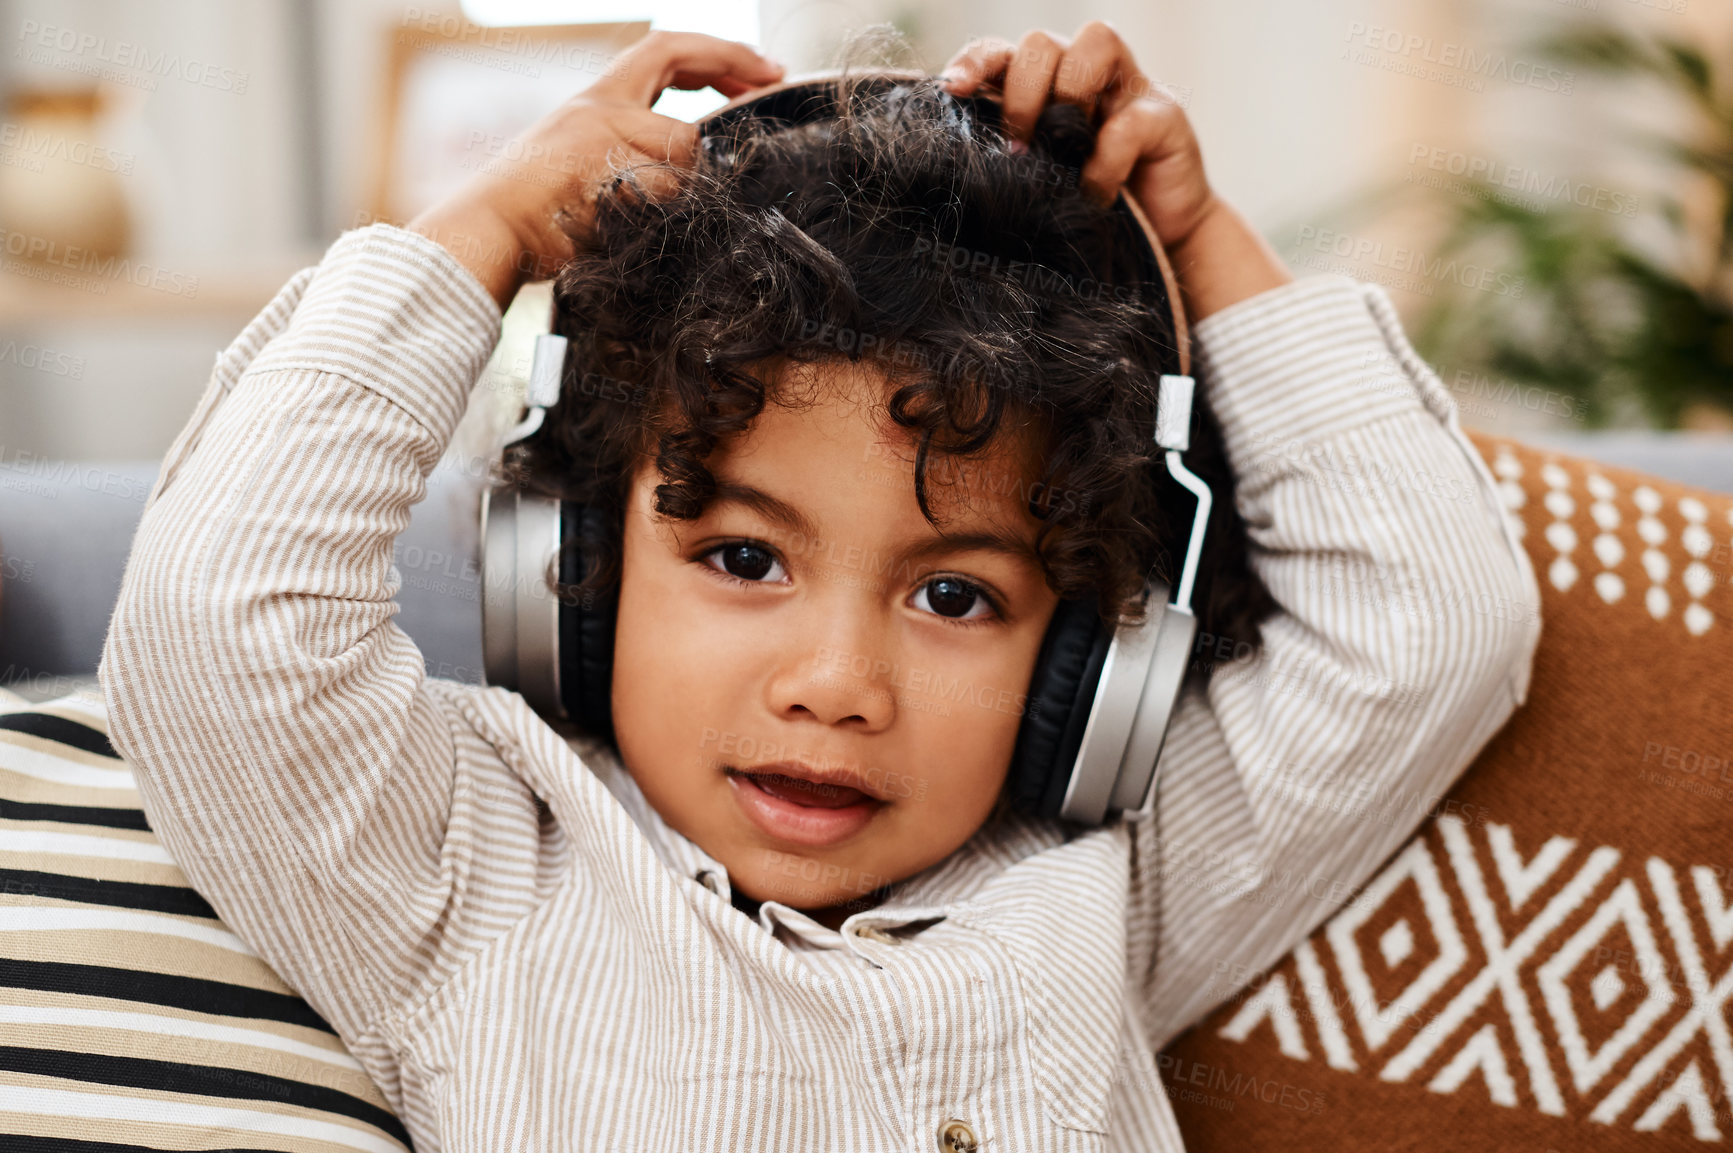 Buy stock photo Portrait of an adorable little boy listening to music on headphones while sitting on a sofa at home